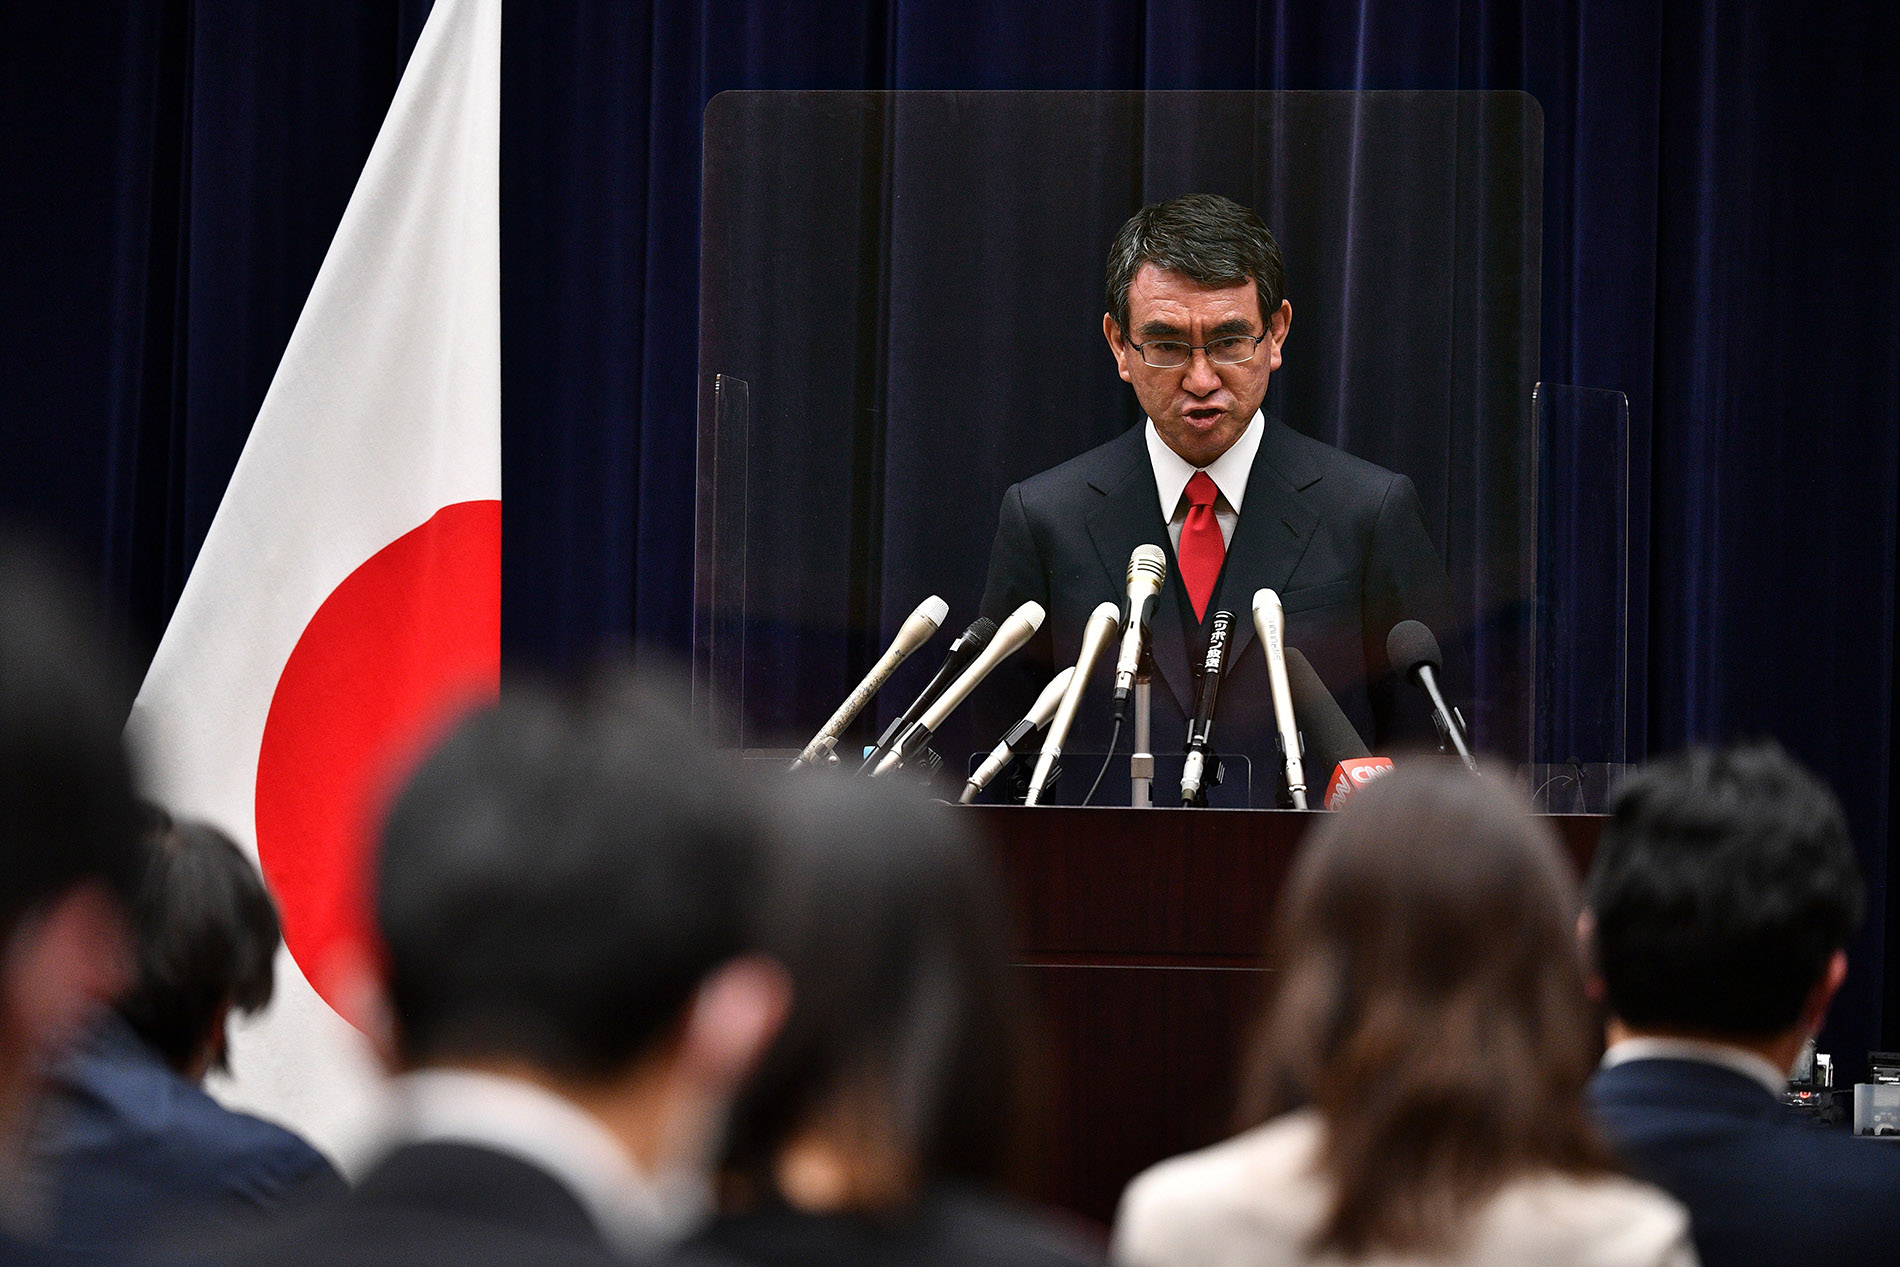 Japan's minister in charge of Covid-19 vaccinations, Taro Kano, speaks during a news conference in Tokyo on February 16, 2021.